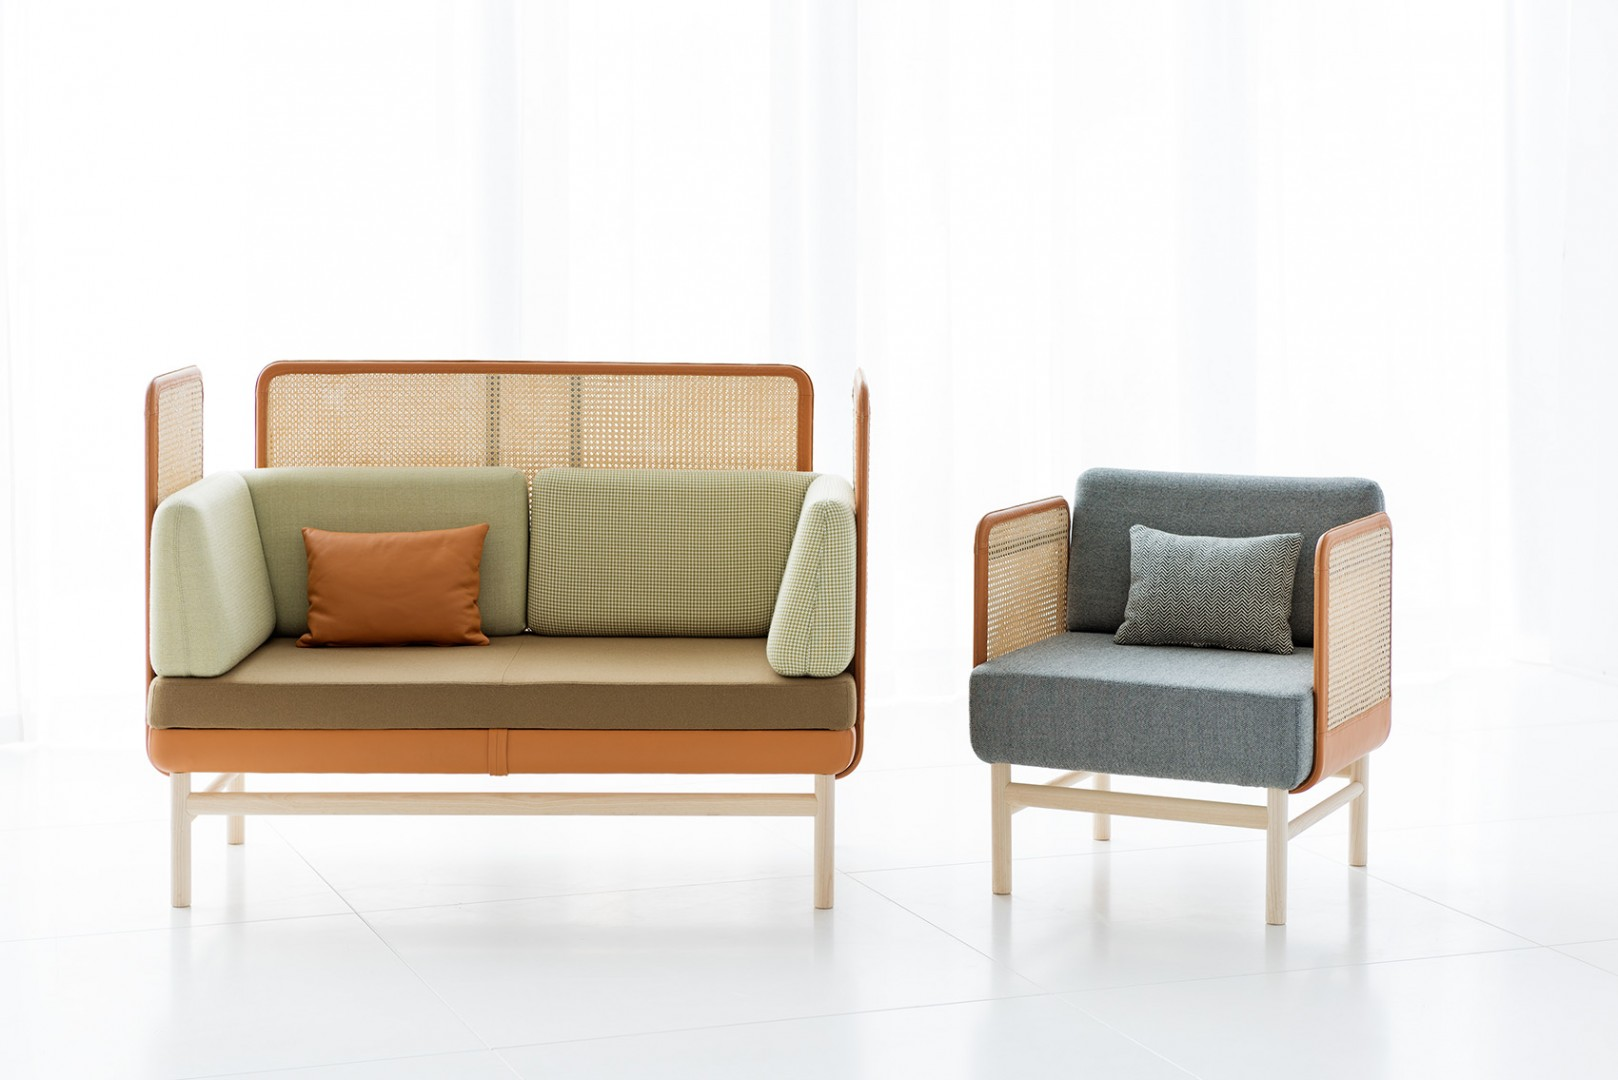 PoP sofa and easychair